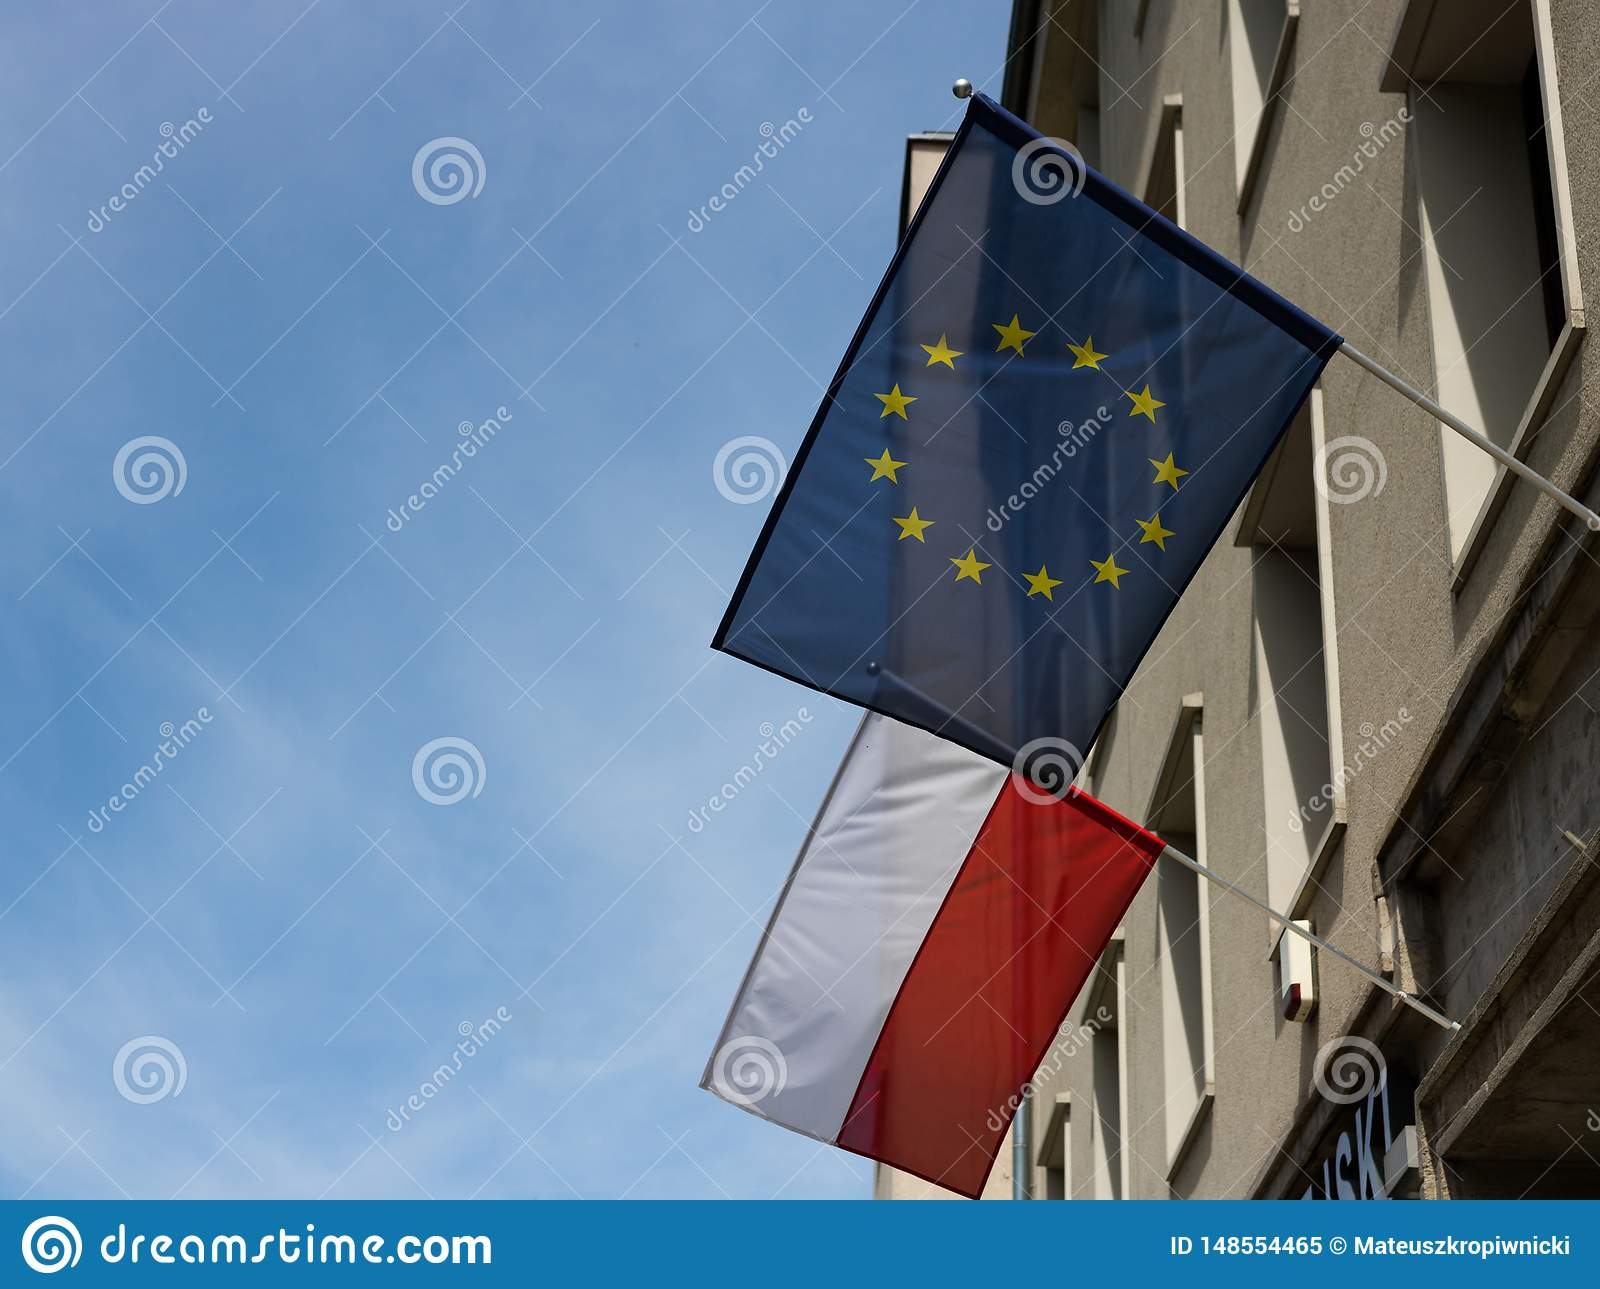 Wrocław, Poland - May 24 2019: European Union and Polish flags weaving on the building days before election to the European